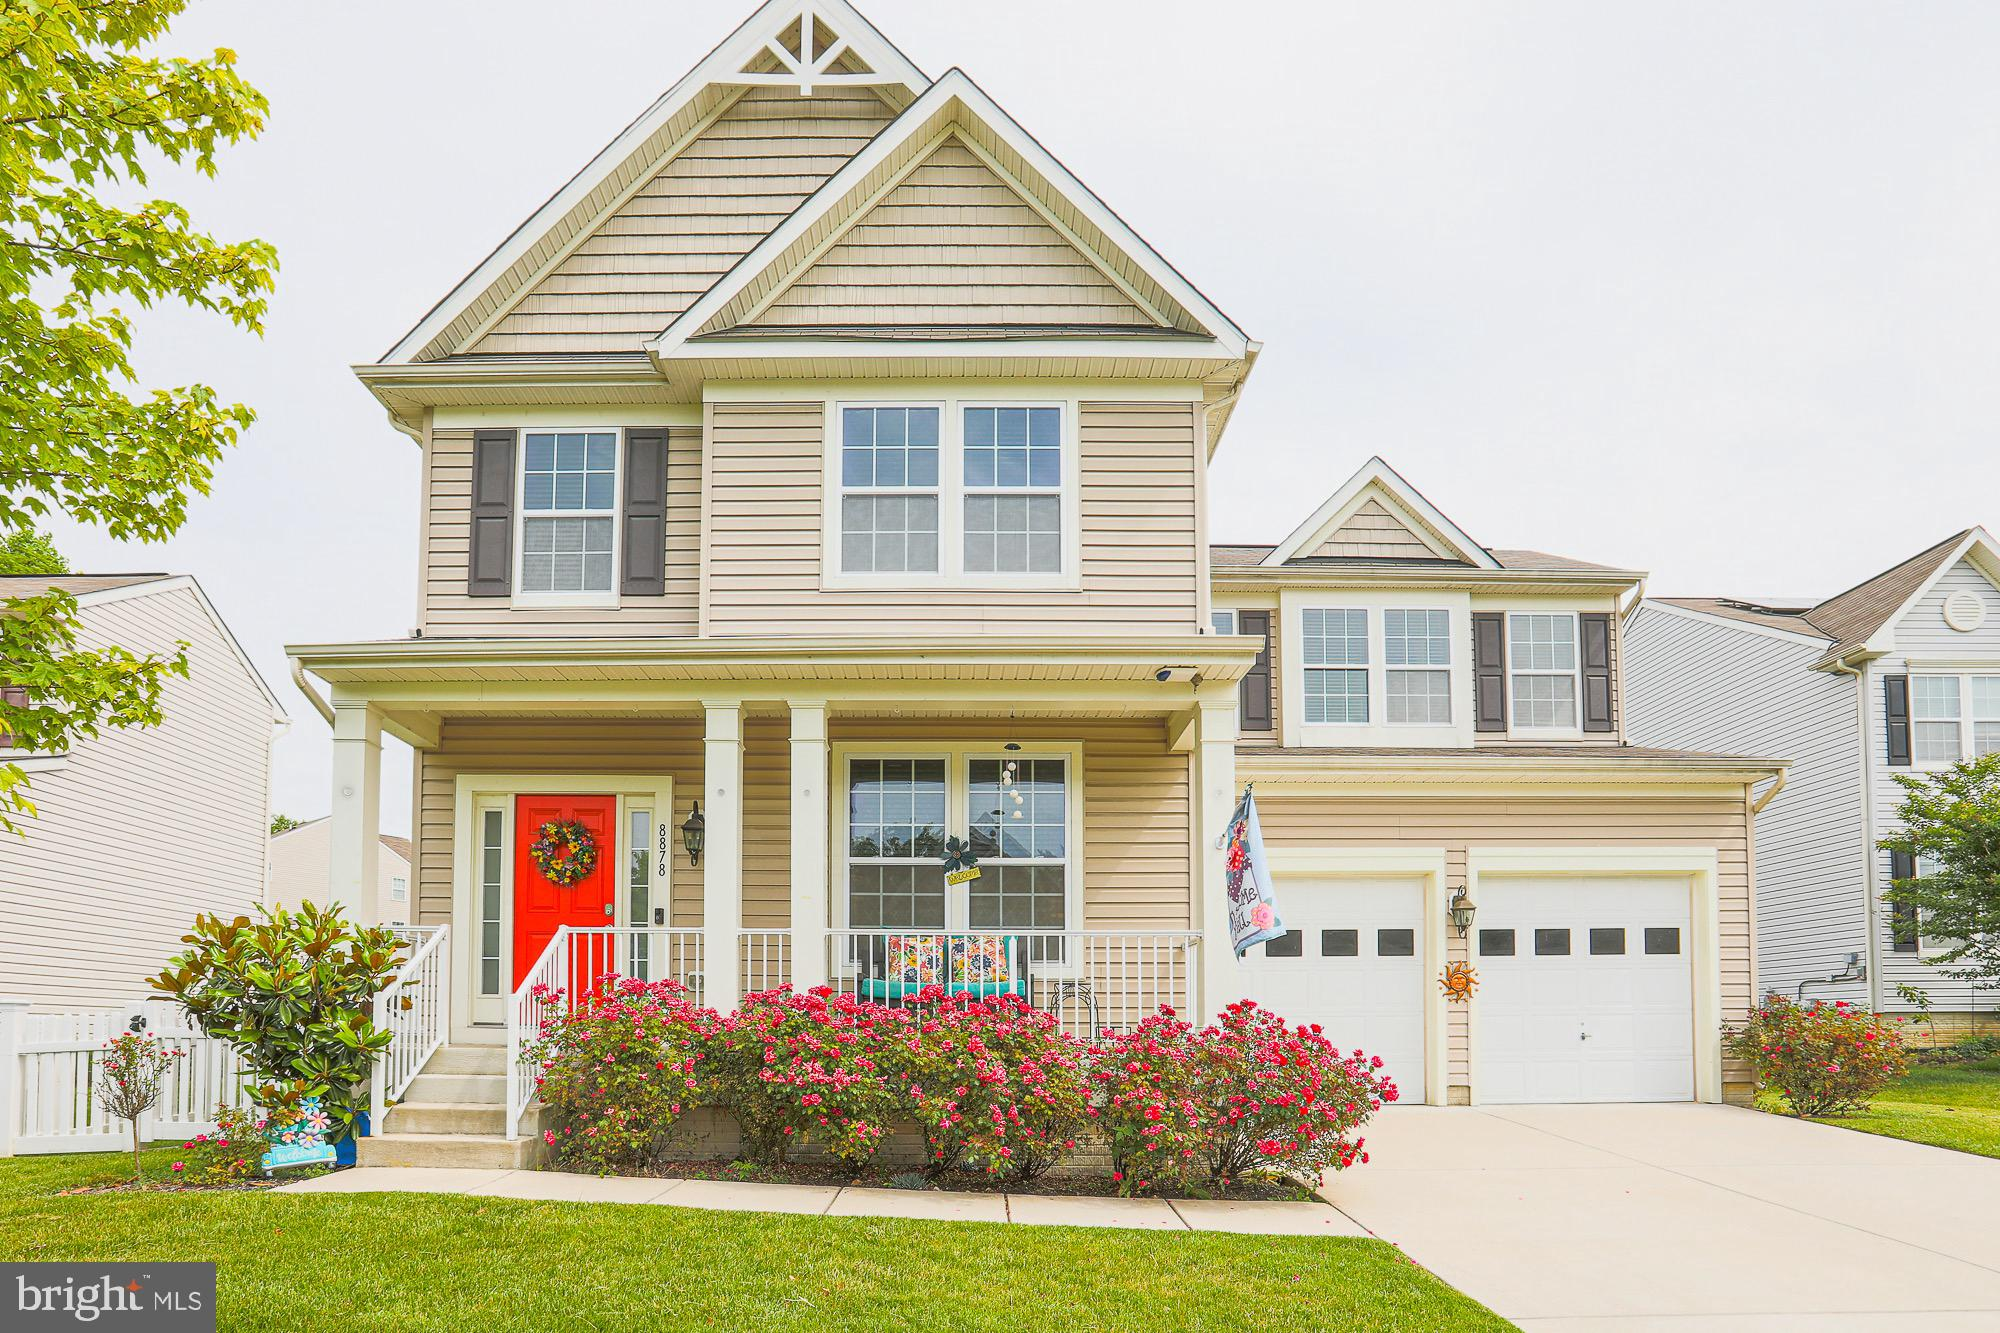 ***Offer deadline June 7 by 5pm***  Rarely available in Perry Meadows!  Over 3,000 sq.ft. and in awesome condition.  This home  has it all including 5 bedrooms, 4 1/2 baths and a 2 car garage.   Stunning hardwoods on main level, upgraded kitchen with new appliances, a sunroom,  mudroom with laundry,  and  open living and dining area with plenty of space to spread out. The  upper level features 4 nice sized bedrooms including a primary with ensuite  plus 2 other full baths. The  walk out basement is huge and offers 2 living areas,  another bedroom and full bath- perfect for guests or in laws!  There is plenty of storage  and a walk out to the fenced in yard.   This lot is just about .25 acres  and at the end of the cul de sac.  You will love the yard, covered front porch and neighborhood. Perry Hall schools, walking path to park and convenient to 695 & 95.  Playground may convey with strong offer.